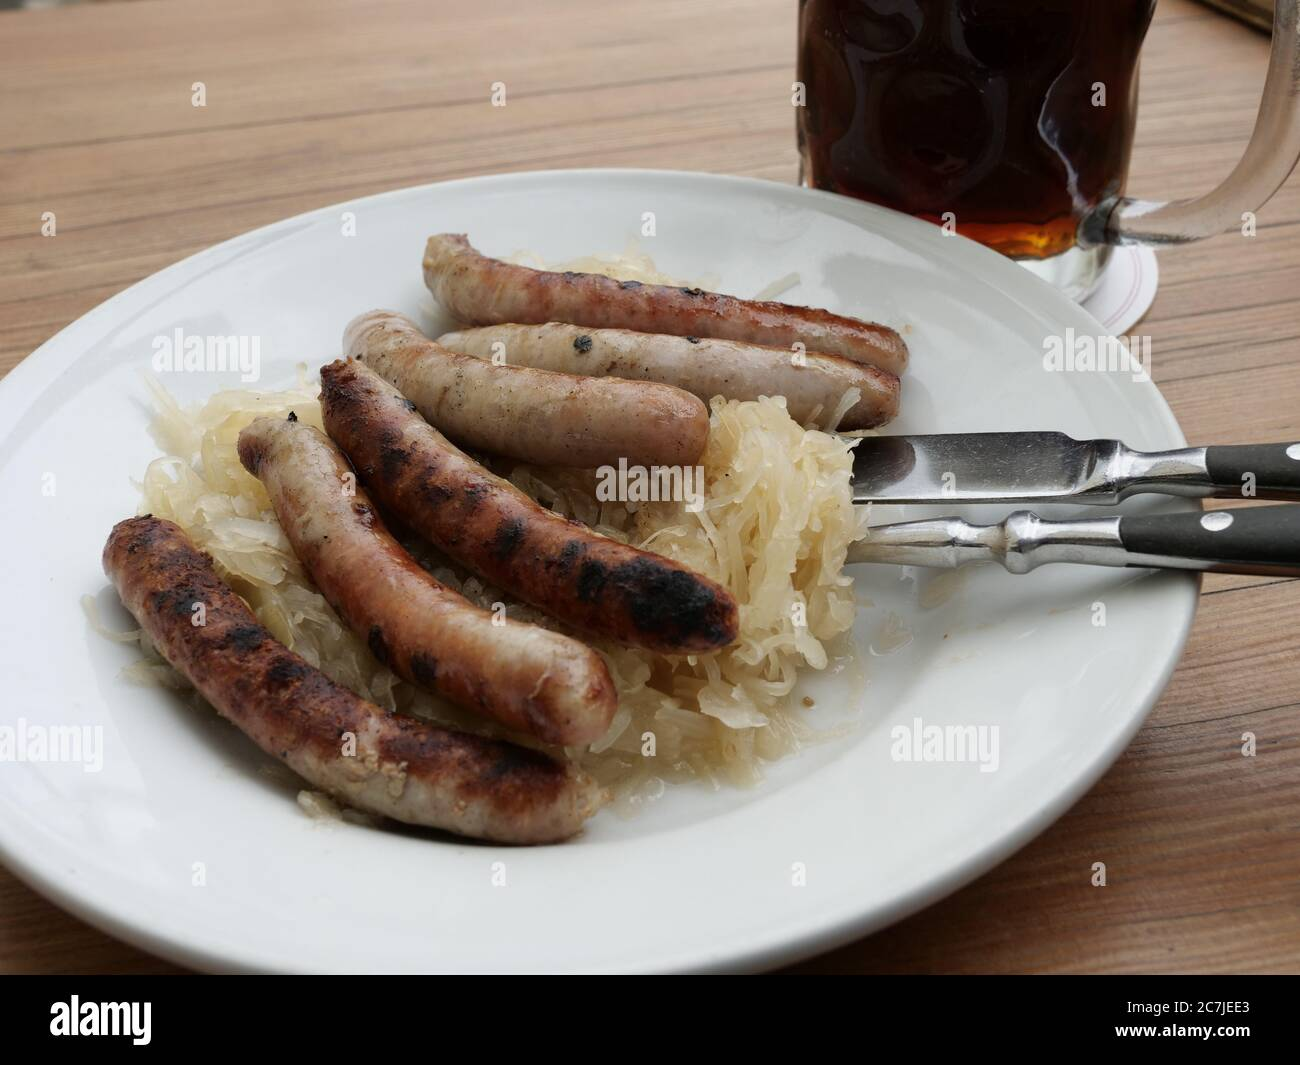 Bavaria Sausage High Resolution Stock Photography And Images Alamy